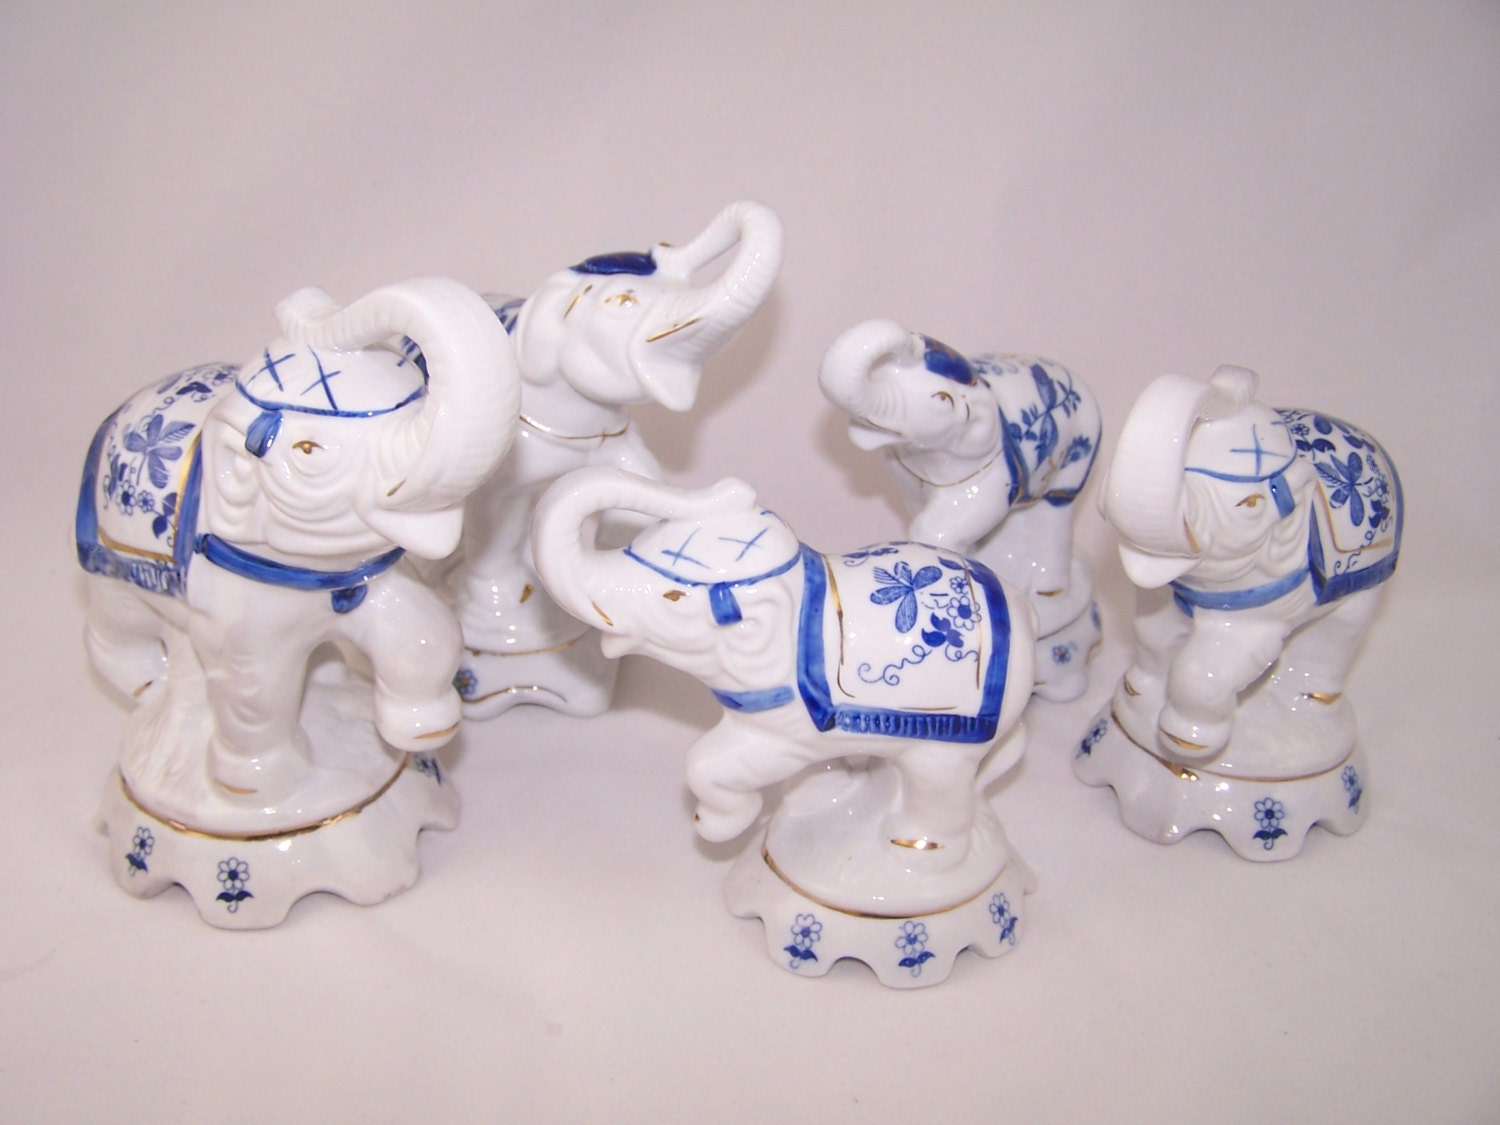 Vintage Porcelain Elephant Family Figurines By